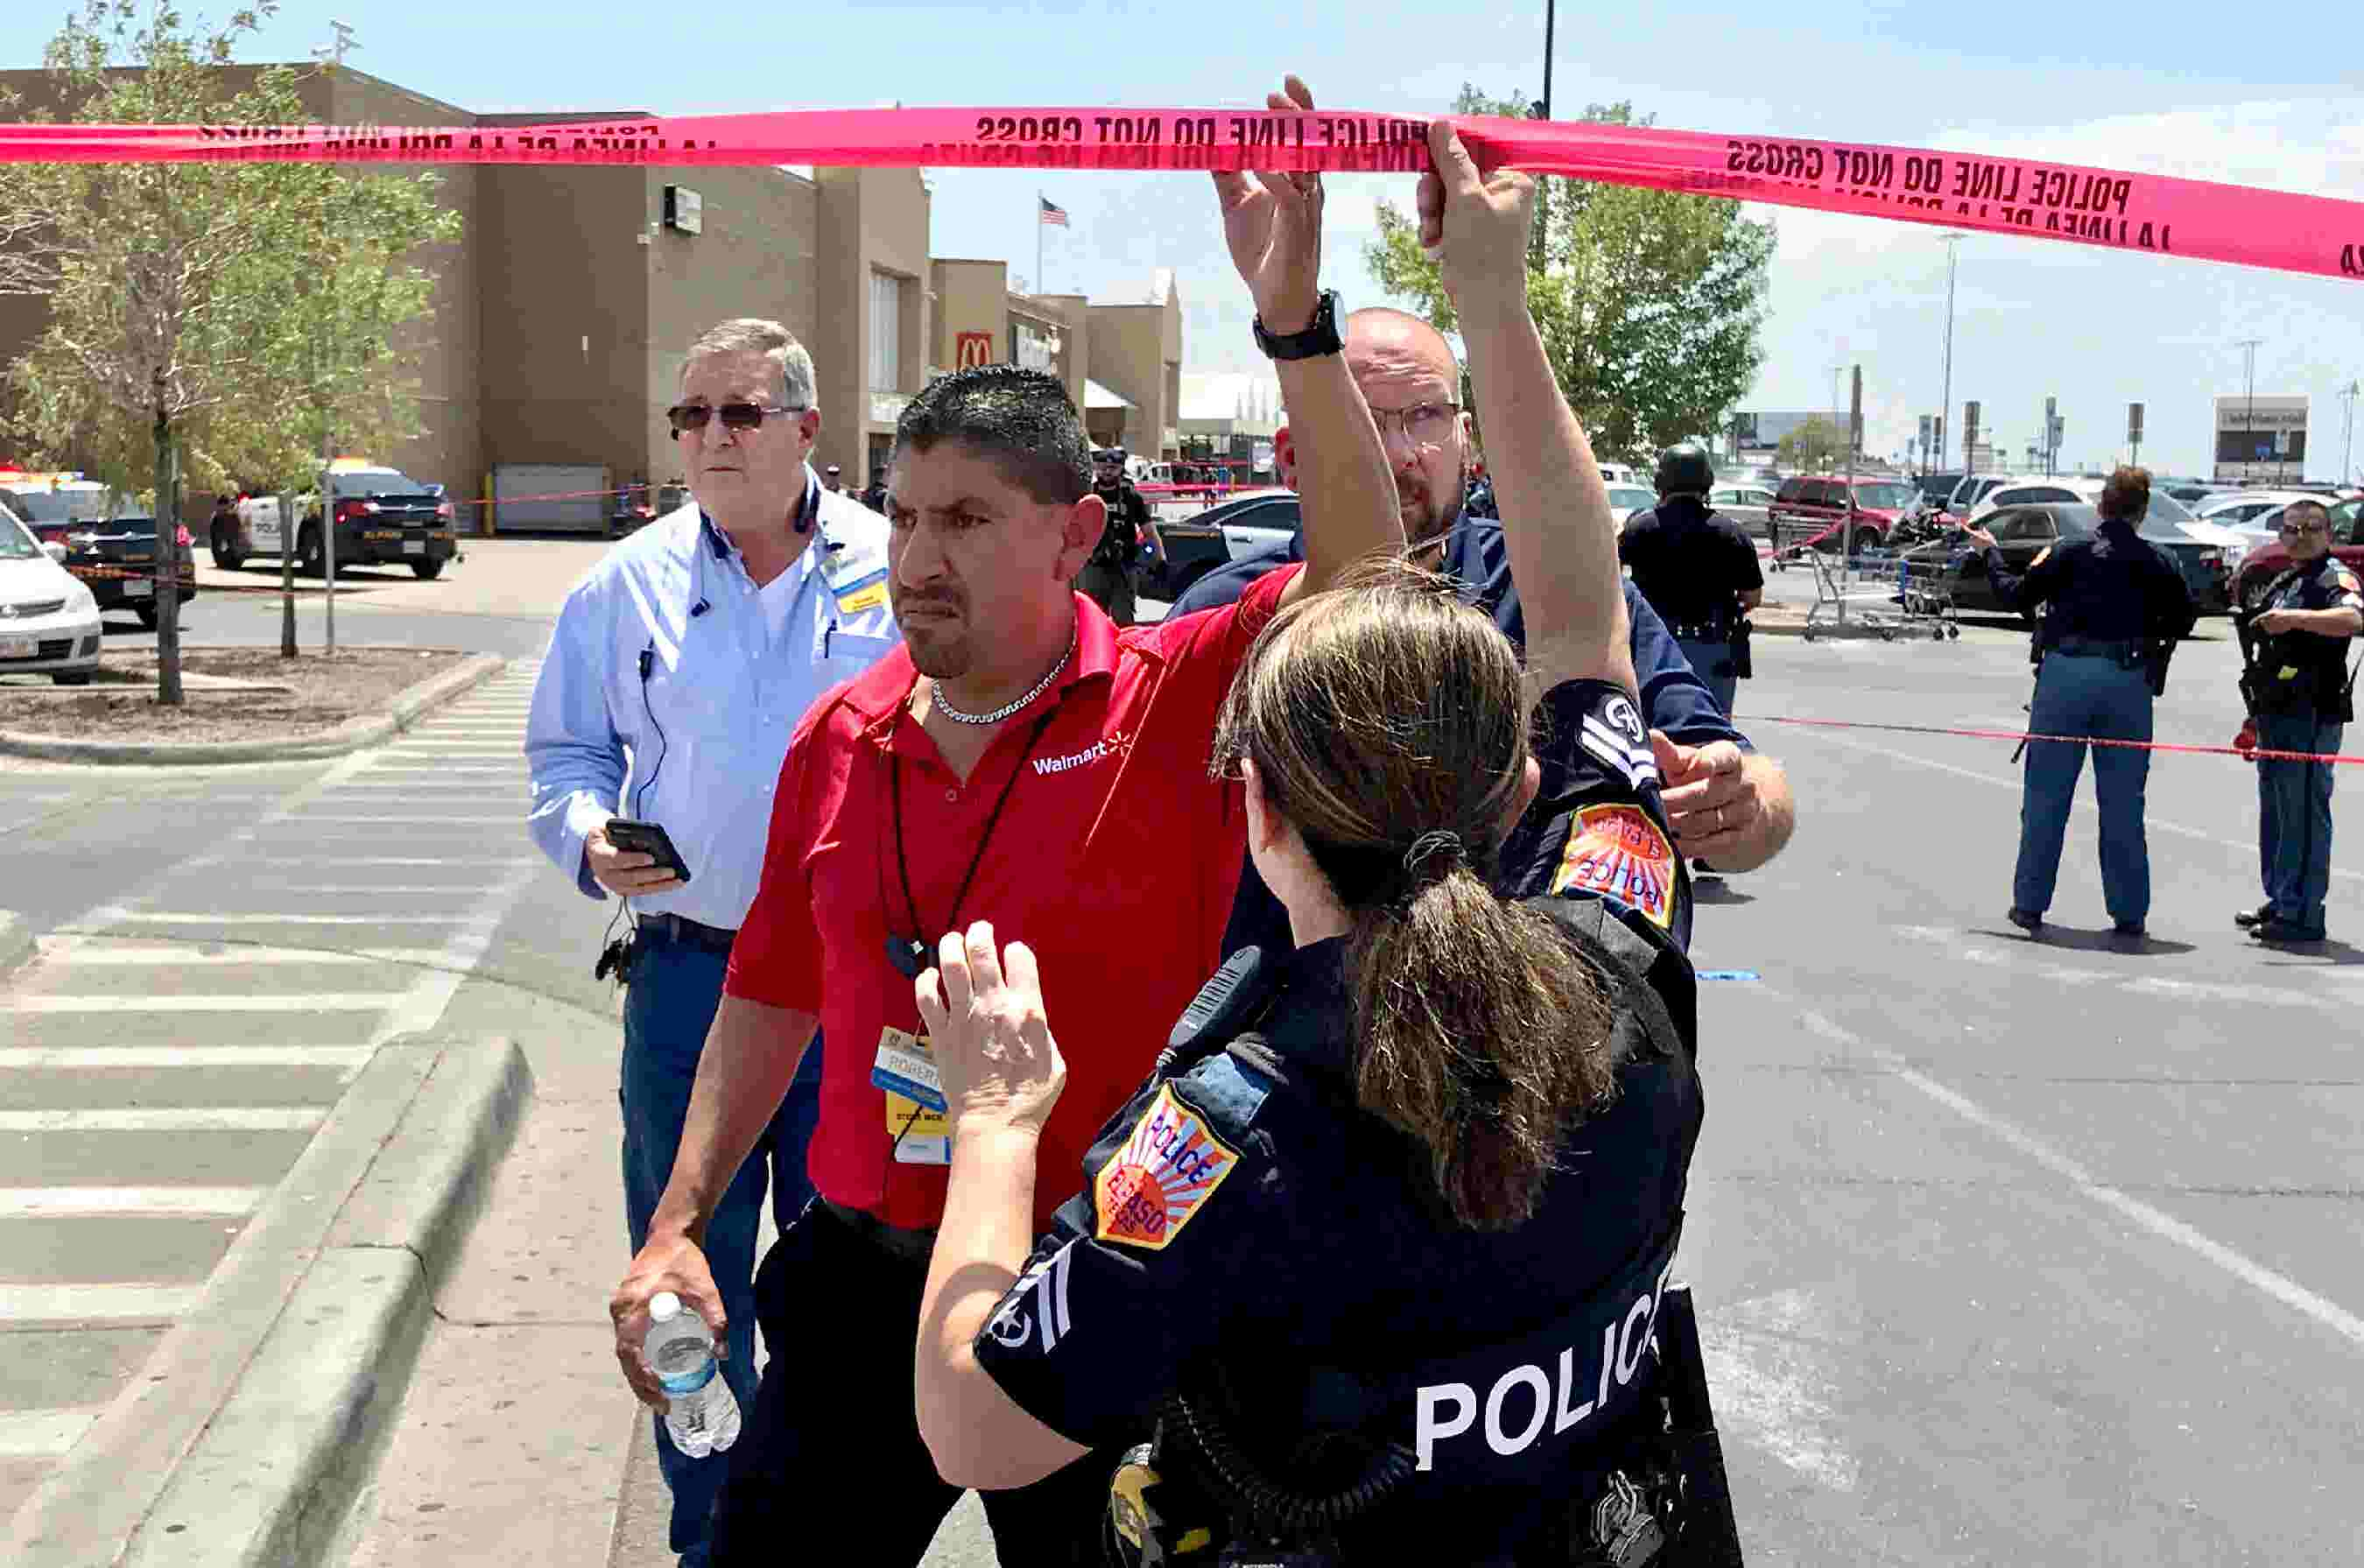 Affidavit in El Paso shooting says suspect was targeting Mexicans